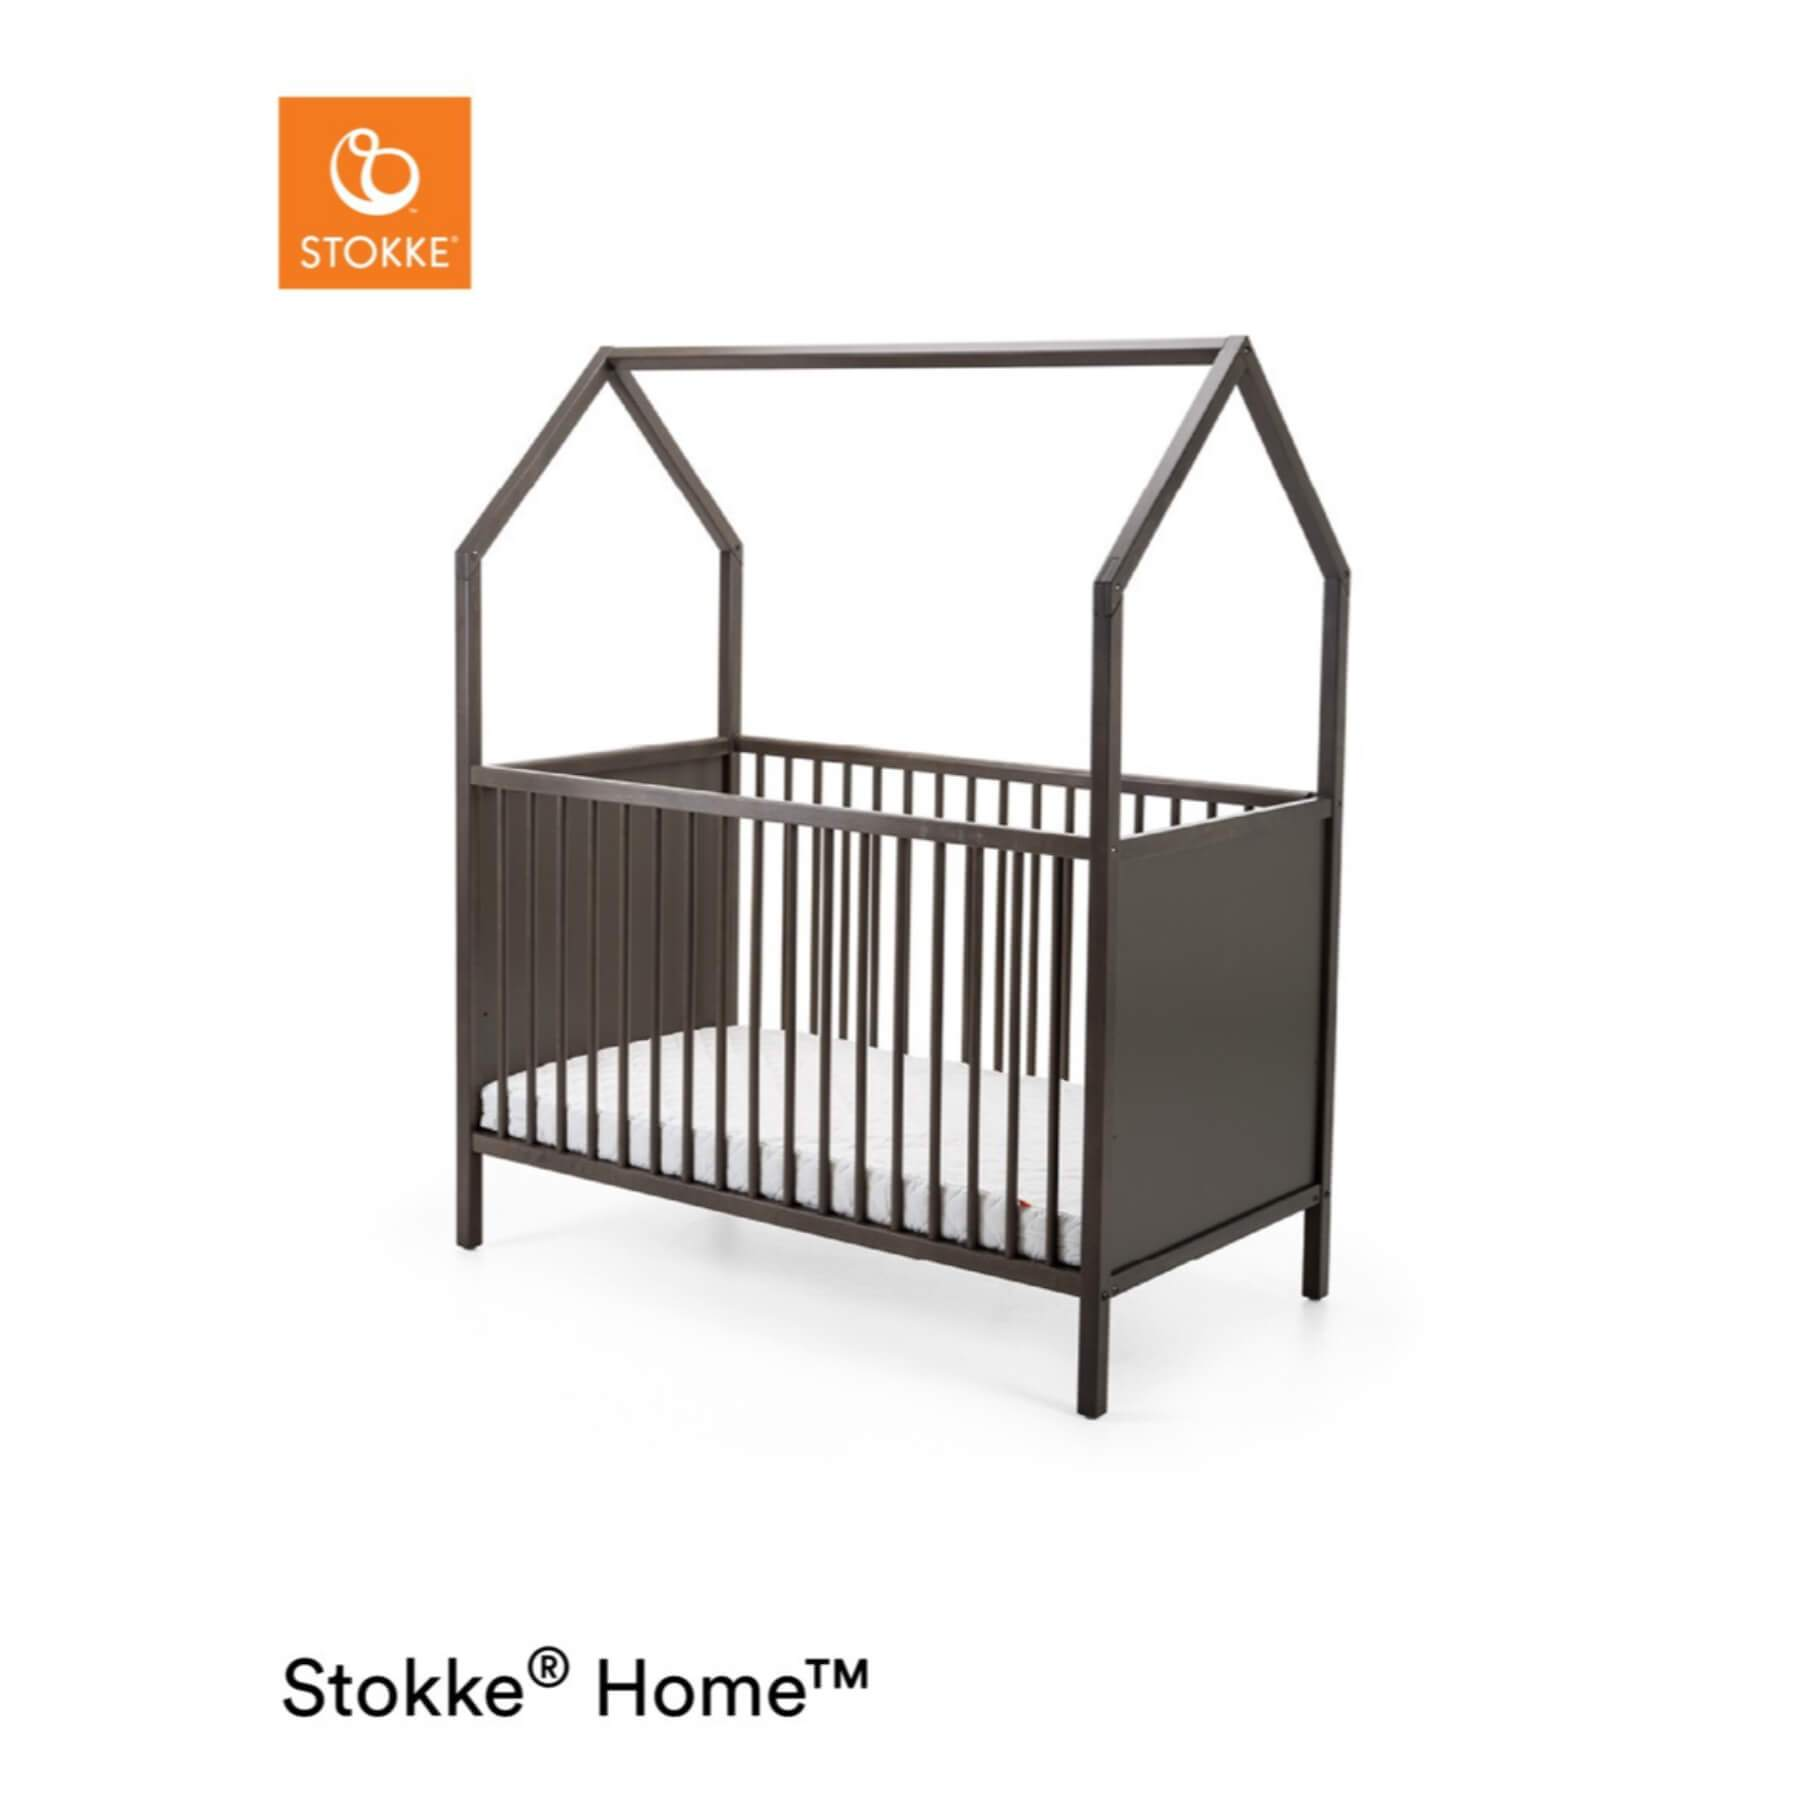 Stokke Home Bed - huggle